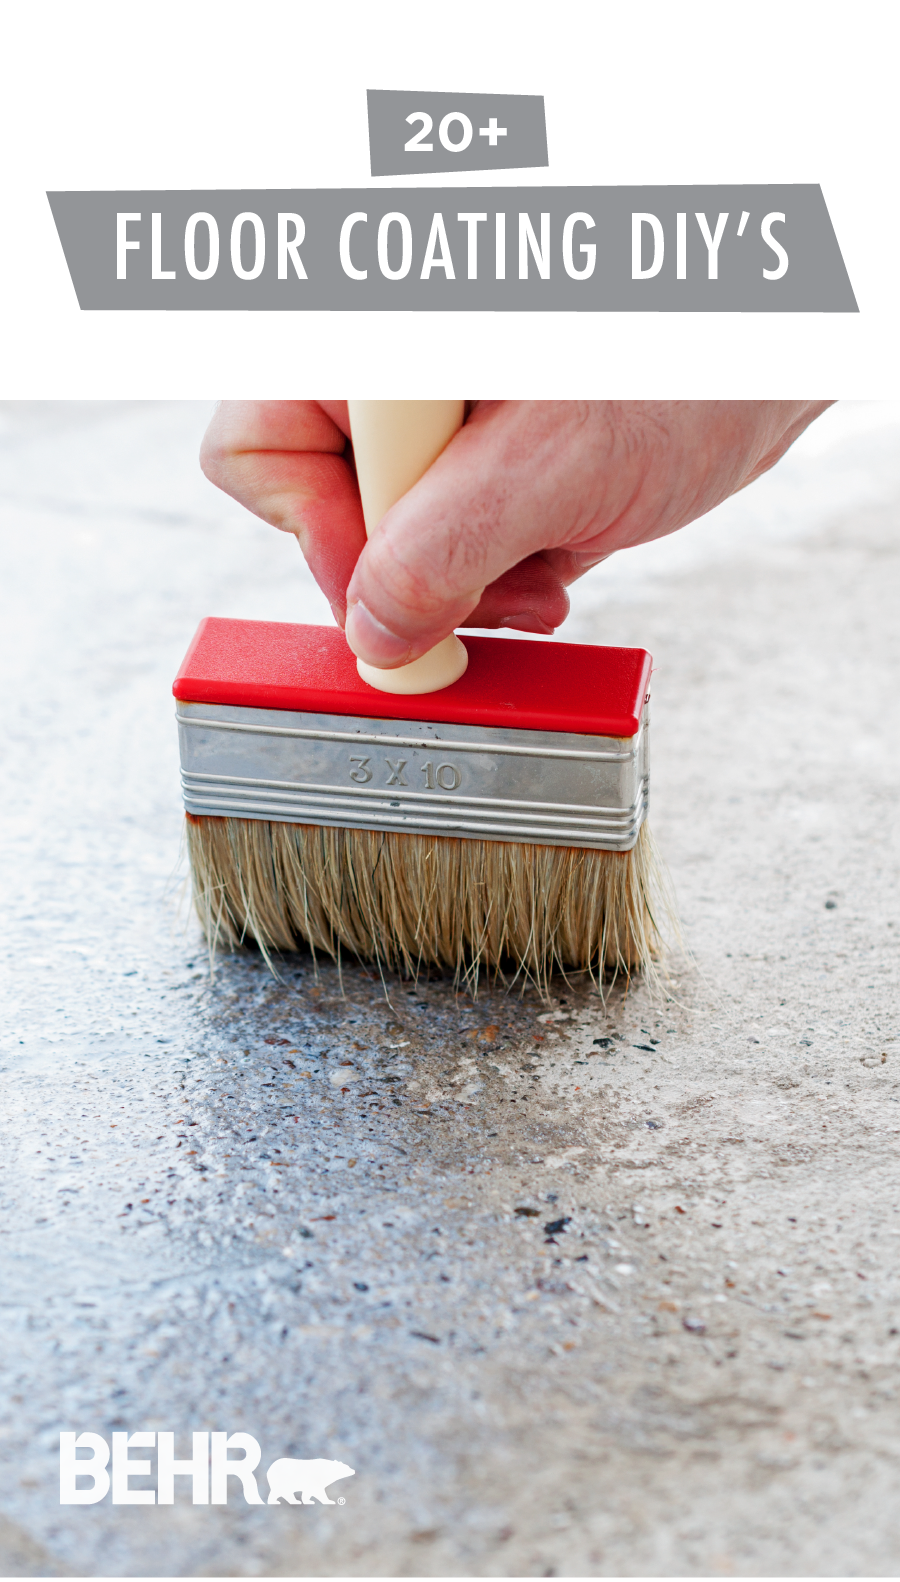 Painting the floor of your garage or concrete porch is an easy way to give the exterior of your home a quick sprucing up. Check out this collection of floor coating how-to articles from BEHR to learn everything you need to know about prepping your floor and applying the coating. Click here to learn more.